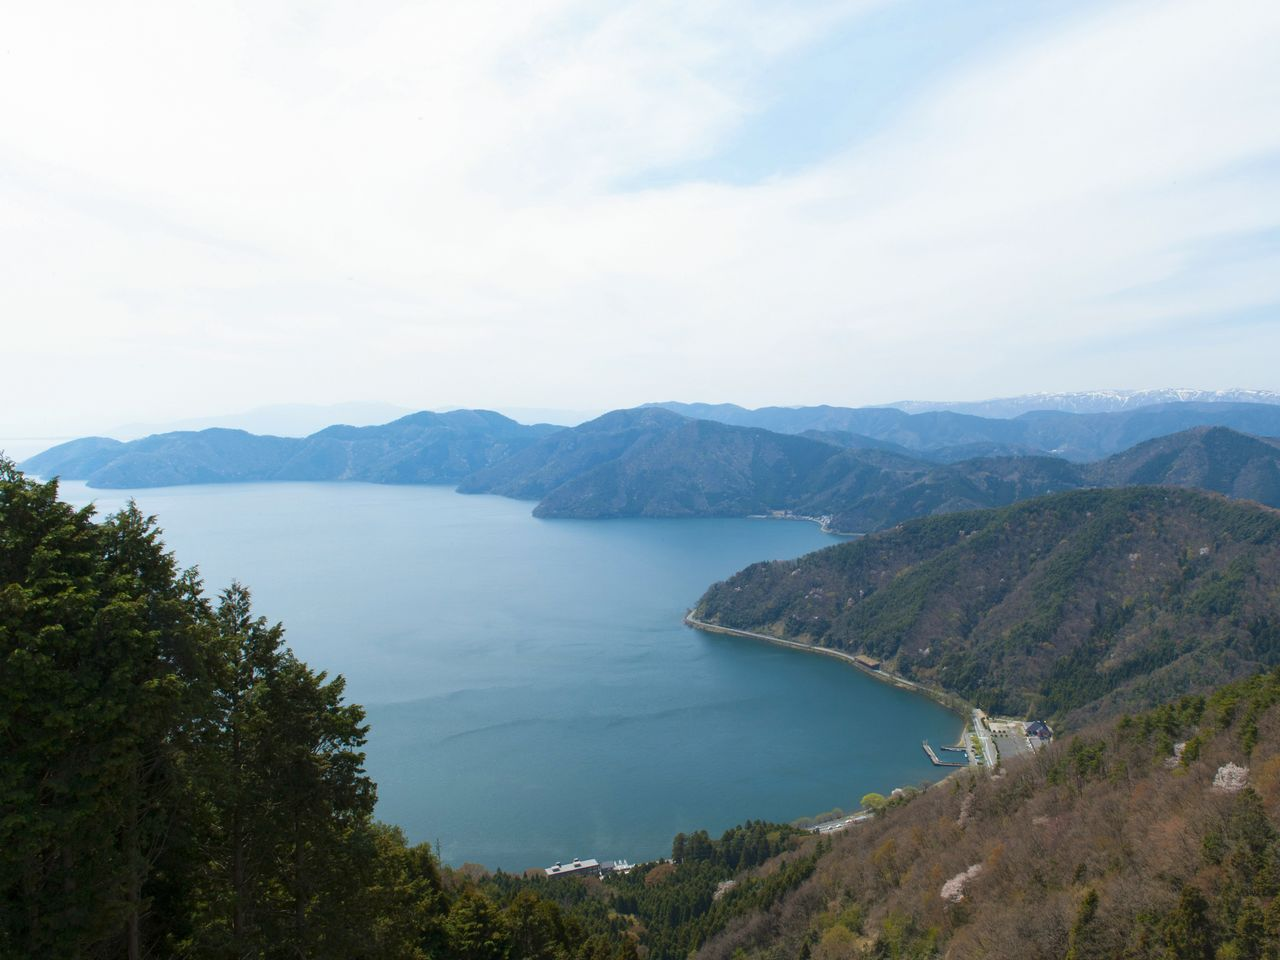 Shizugatake, site of a battle hundreds of years ago, overlooks the northern part of Lake Biwa.